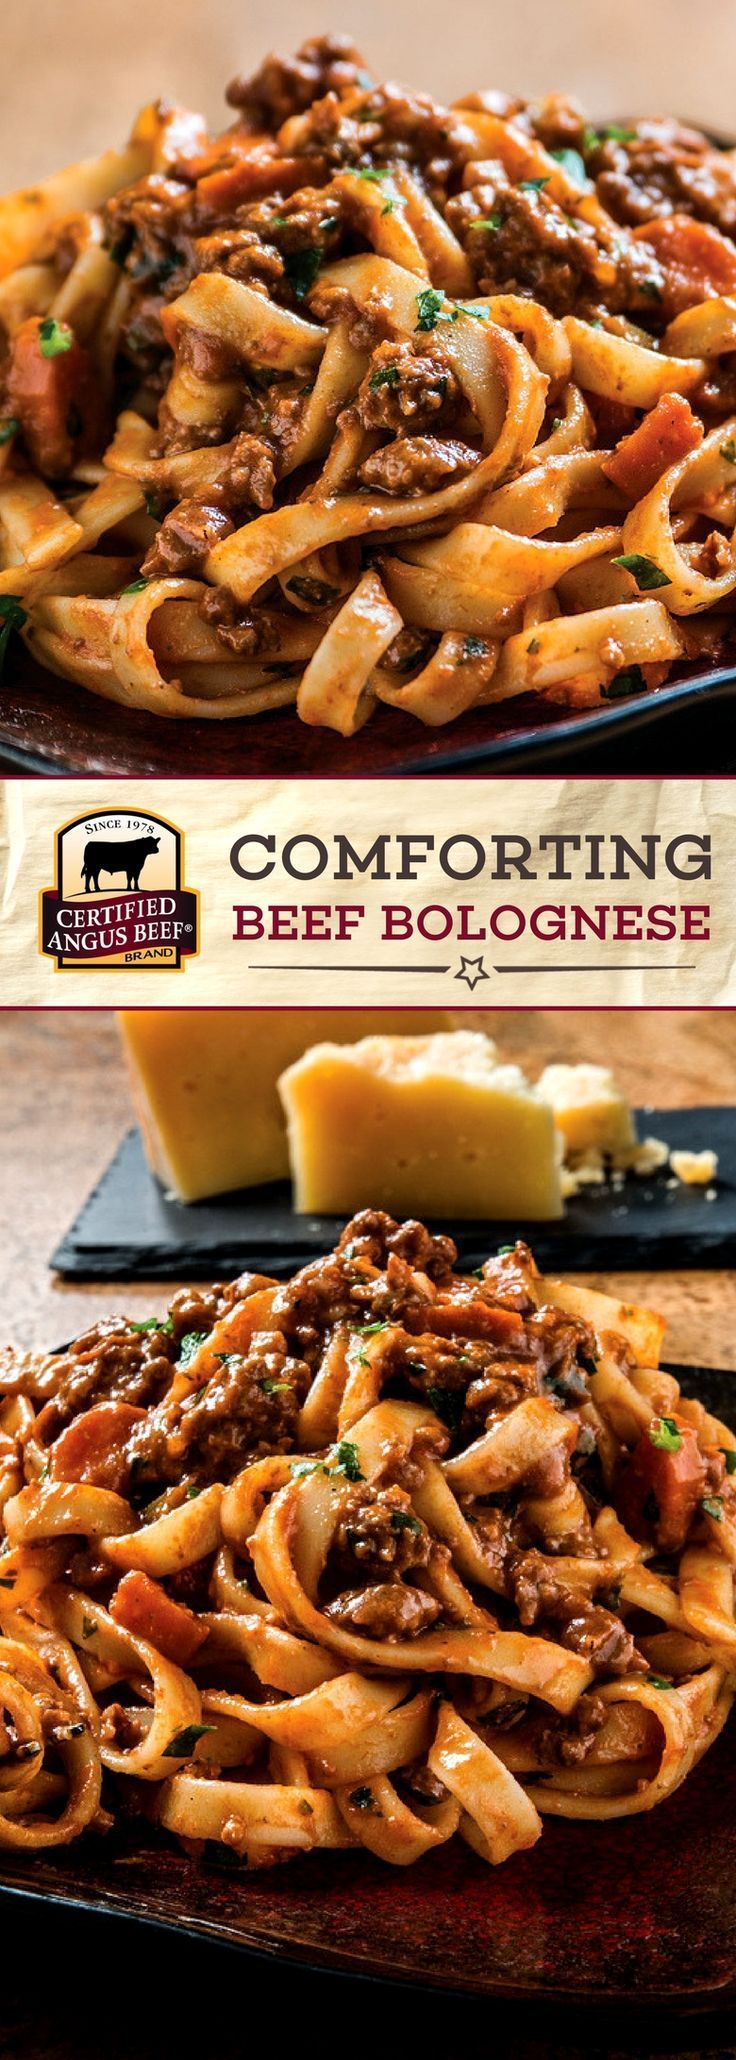 Magic happens as theCertified Angus Beef ®️️️️️️️️️️️️️️️️️️️️️️️ brand beef, BACON, and aromatic vegetables slowly cook down with wine, tomato paste, and beef broth in this COMFORTING Bolognese Recipe. Served with fettuccine pasta noodles and garnished with pleasantly salty Parmigiano-Reggiano cheese, this dish is a comfort food classic for your family table! #bestangusbeef #certifiedangusbeef #beefstewrecipe #pastarecipe